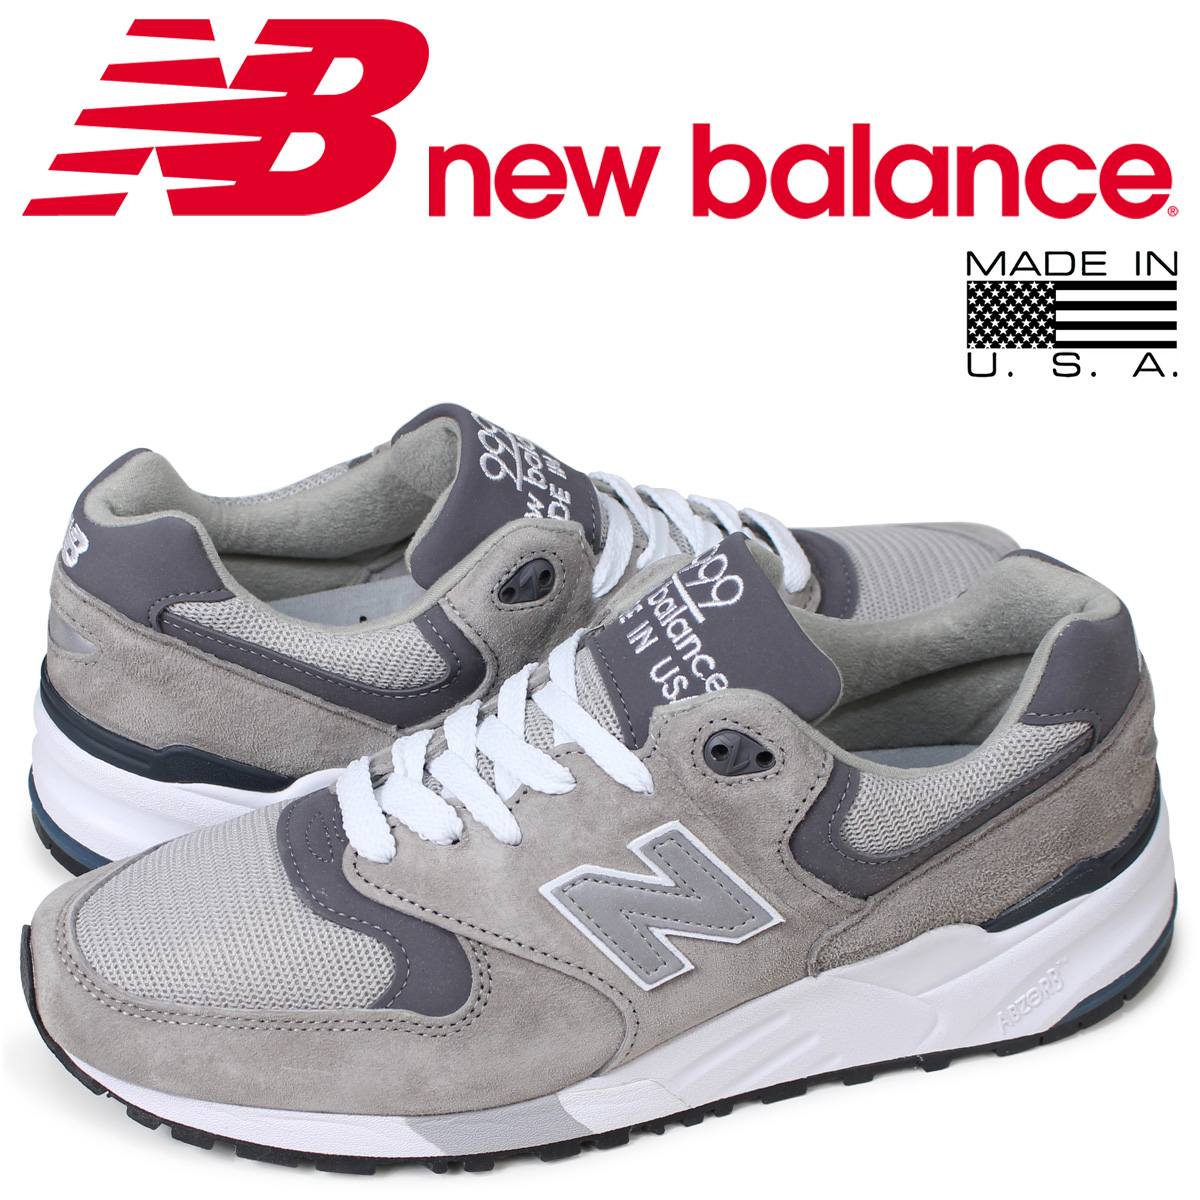 sports shoes 5f9a9 24615 New Balance new balance 999 men's sneakers M999CGL D Wise MADE IN USA gray